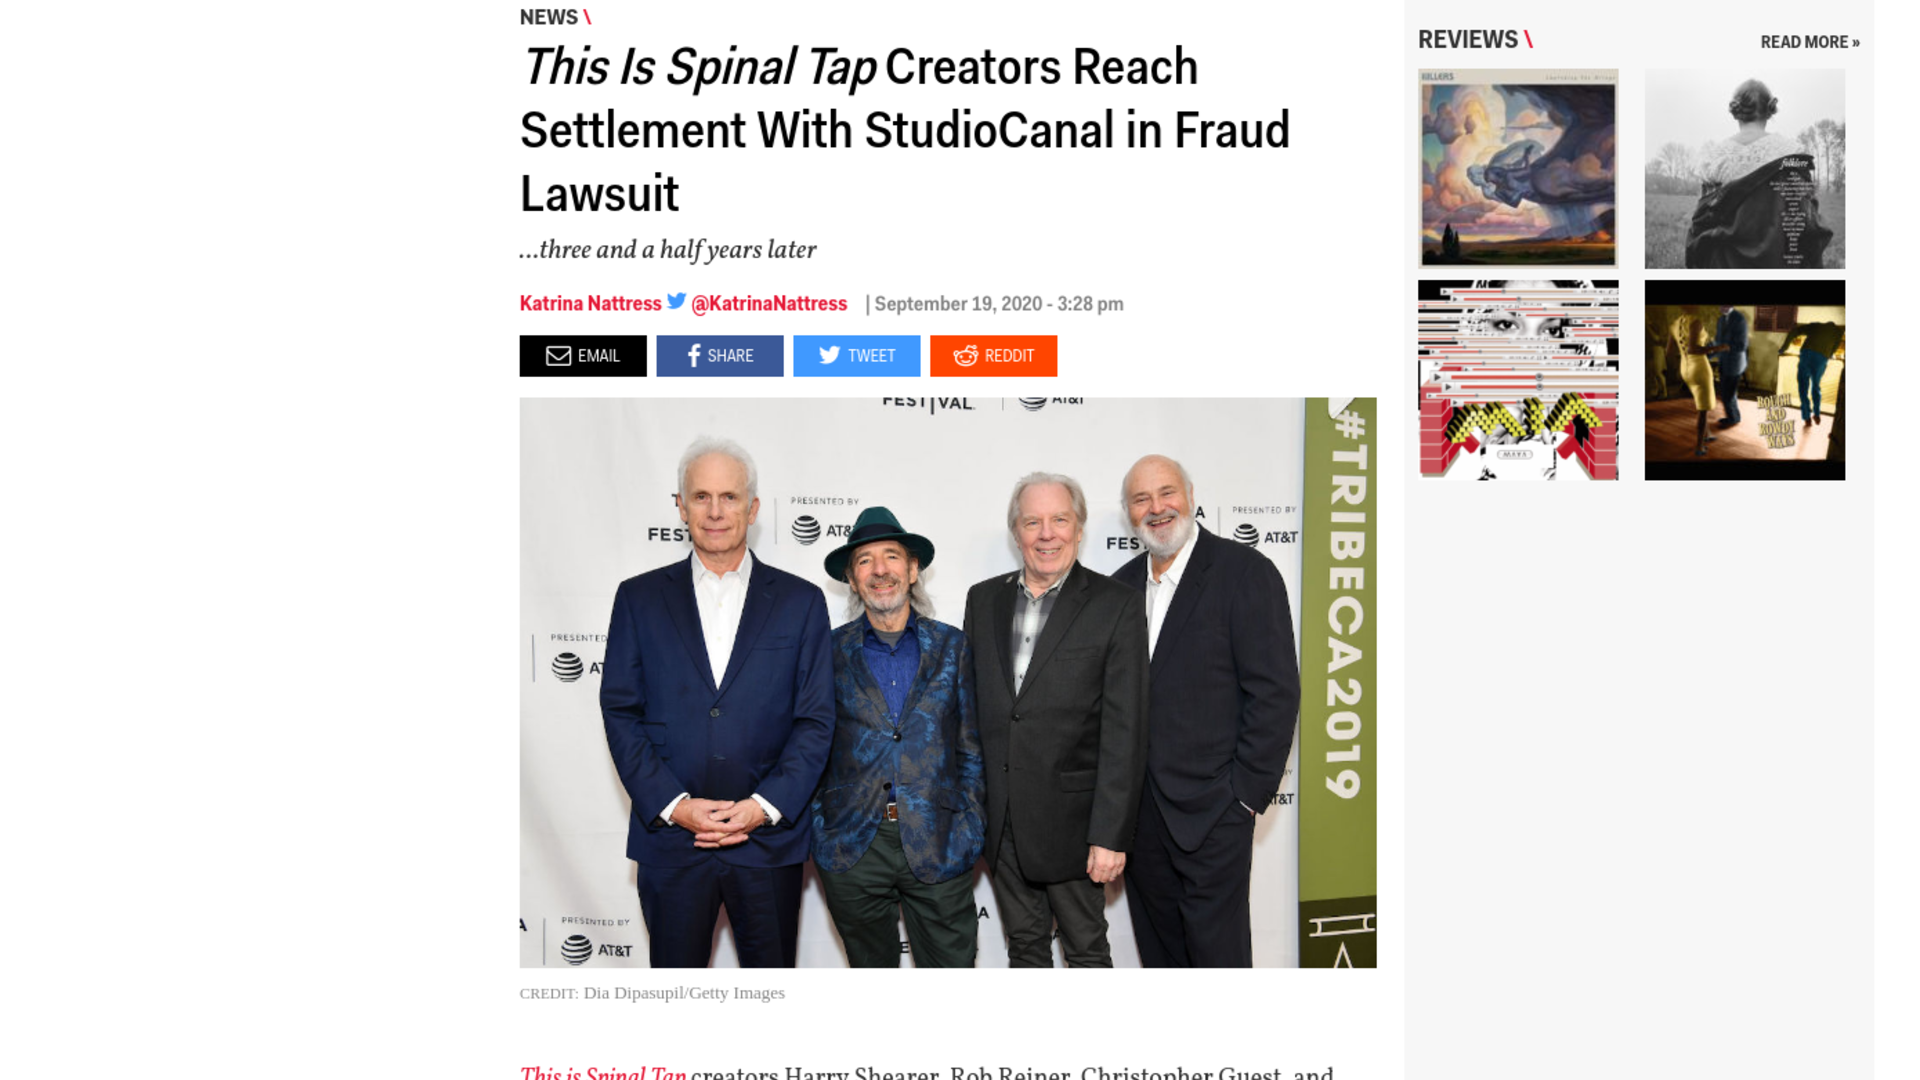 Fairness Rocks News This Is Spinal Tap Creators Reach Settlement With StudioCanal in Fraud Lawsuit